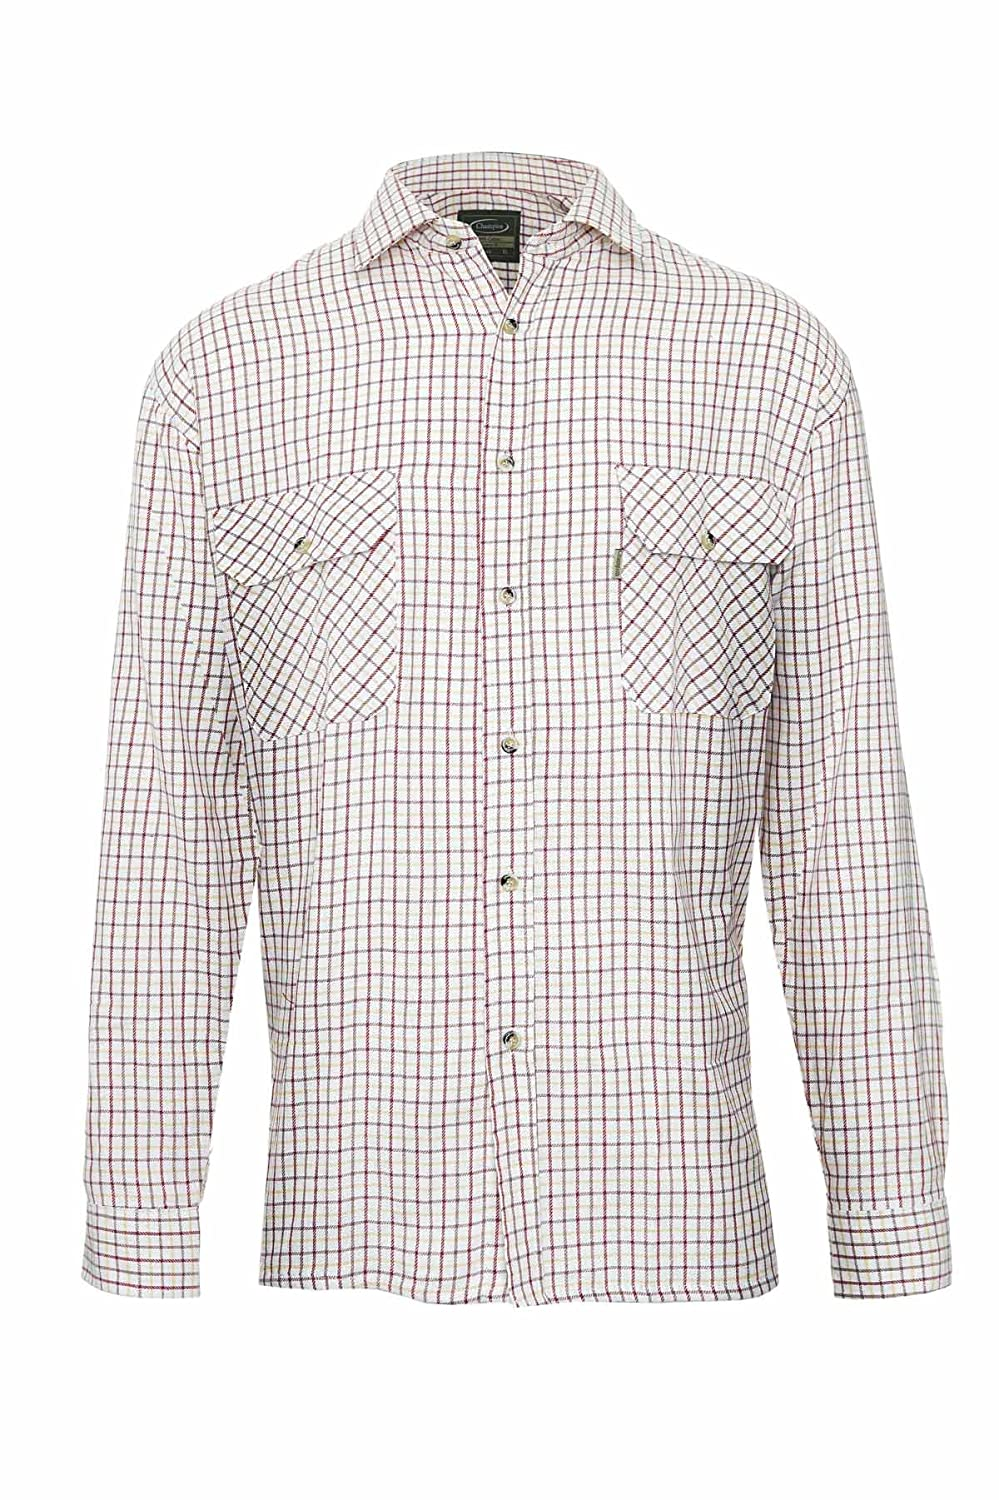 Champion Mens Country Check Polycotton Shirts Ideal for Fishing Shooting Hunting - TATTERSALL CH-TATTERSALL